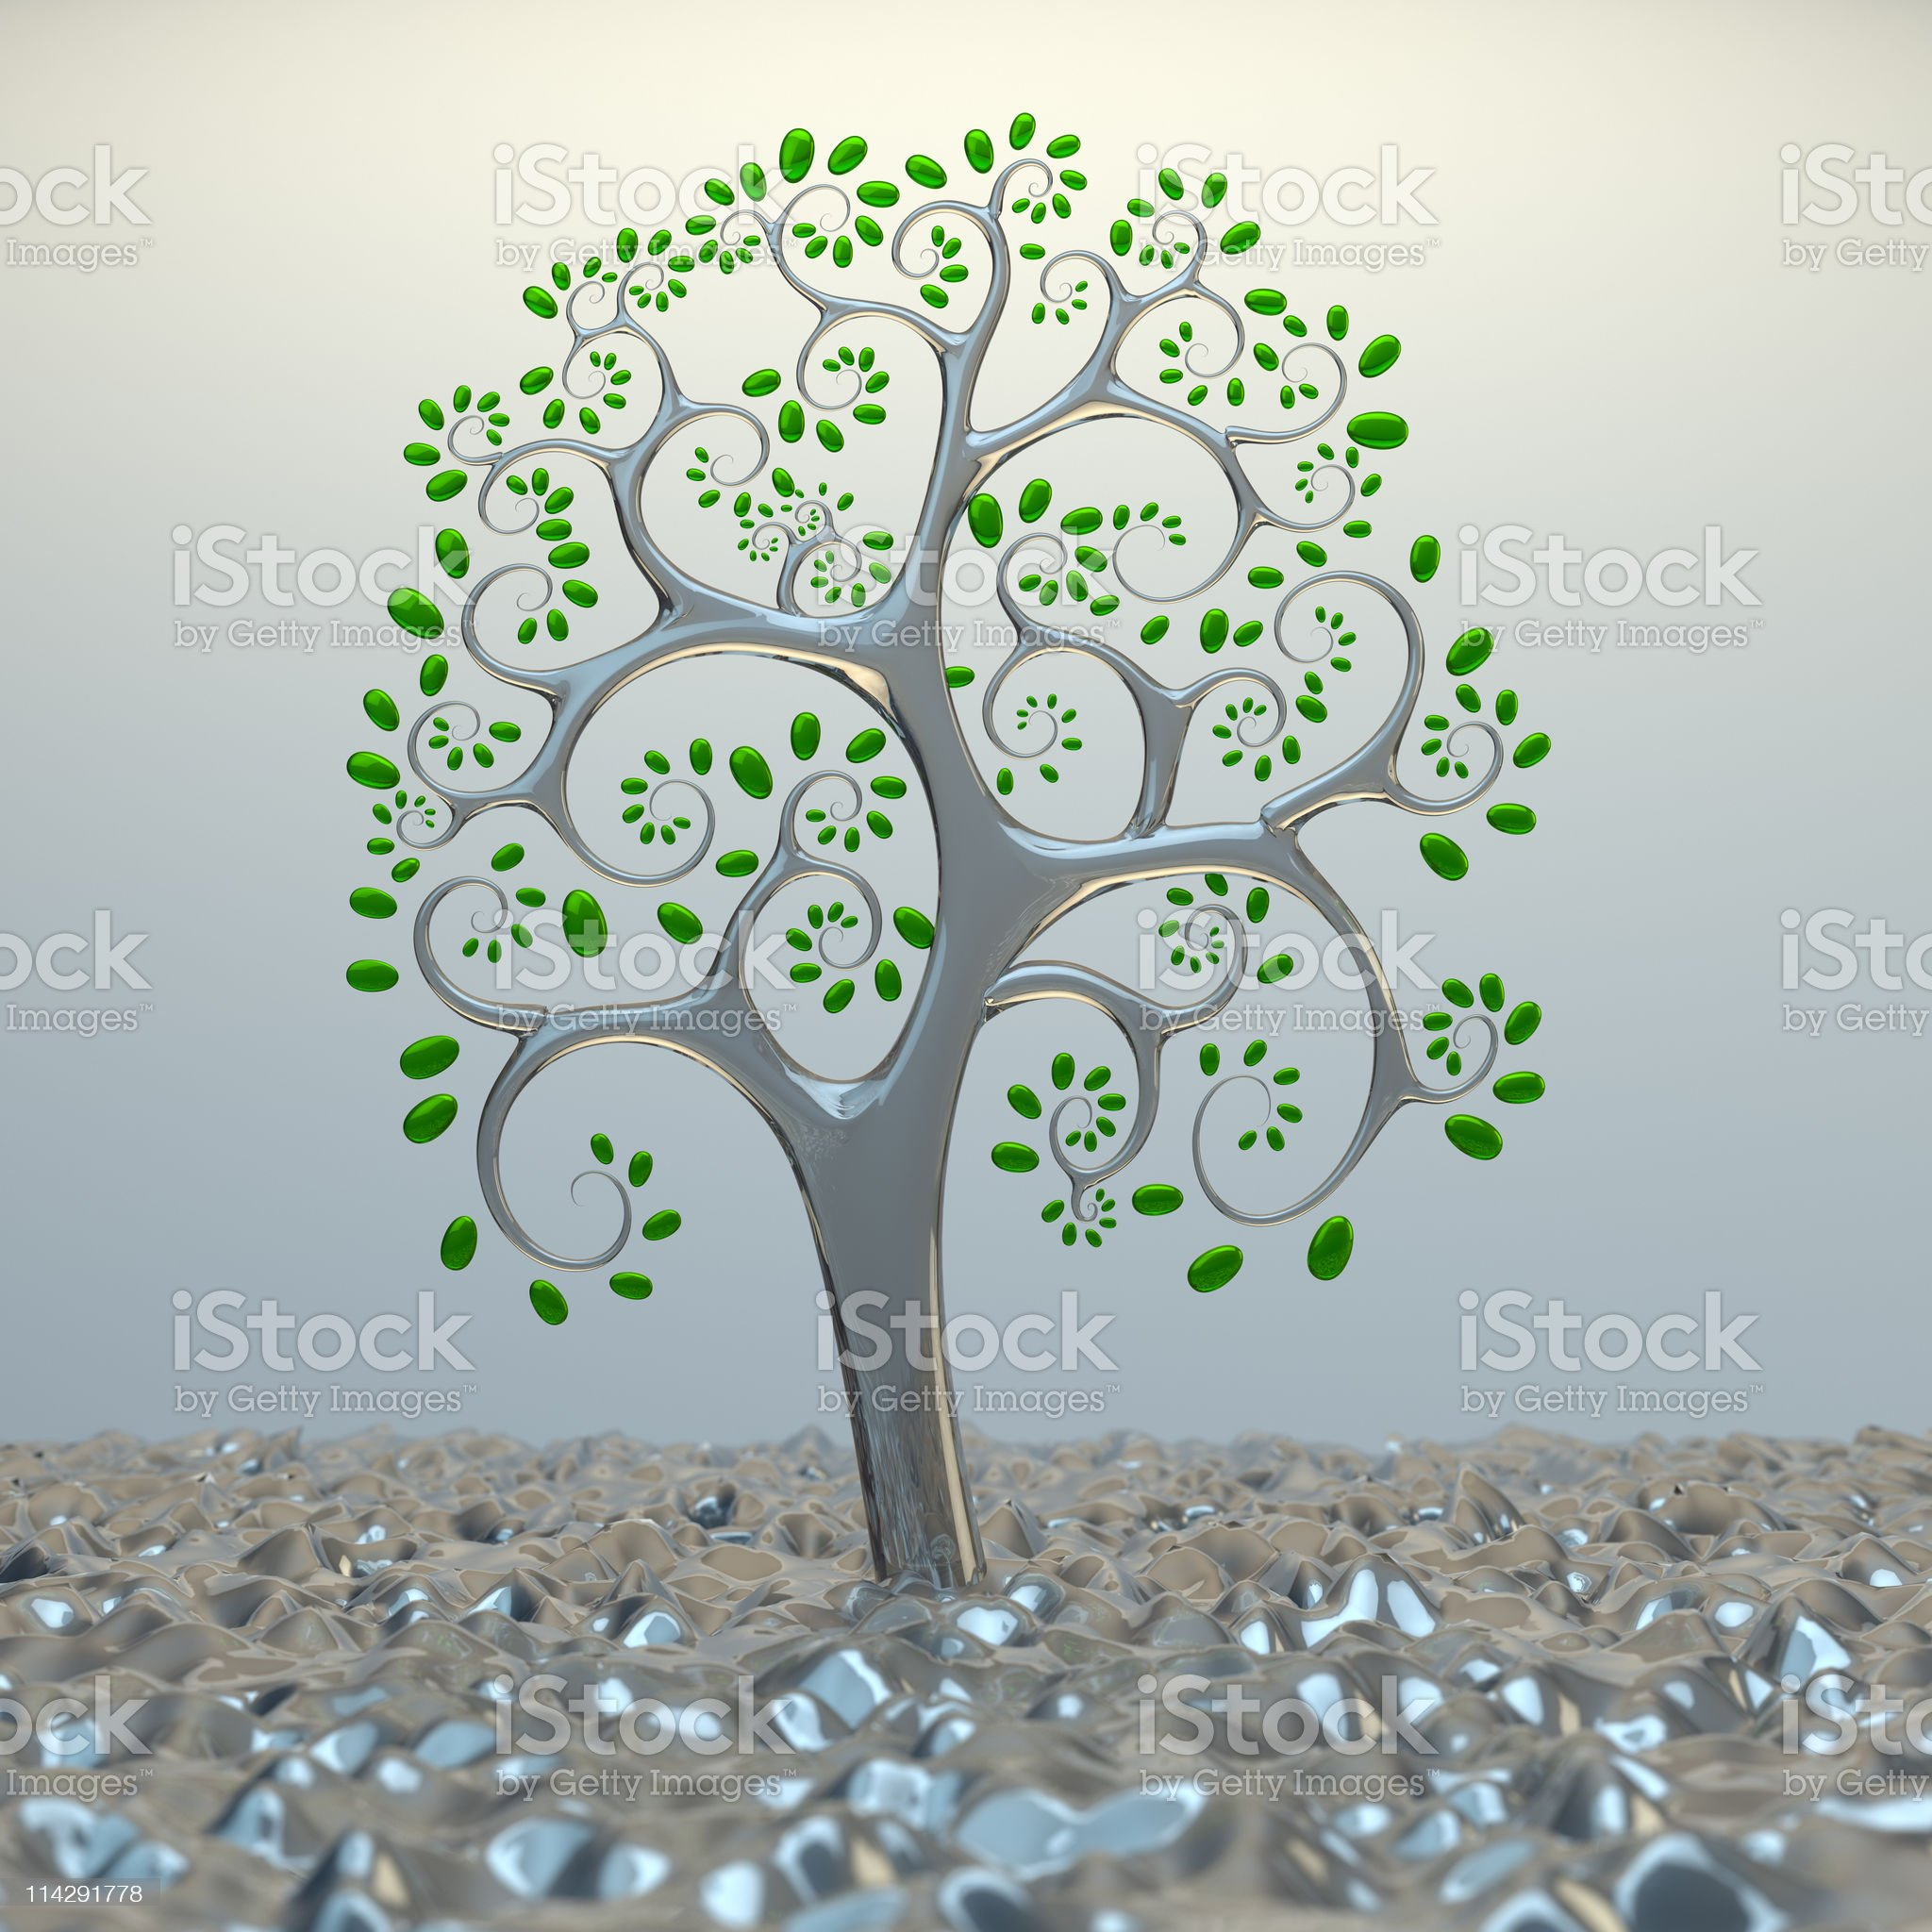 Tree from golden section elements. royalty-free stock photo